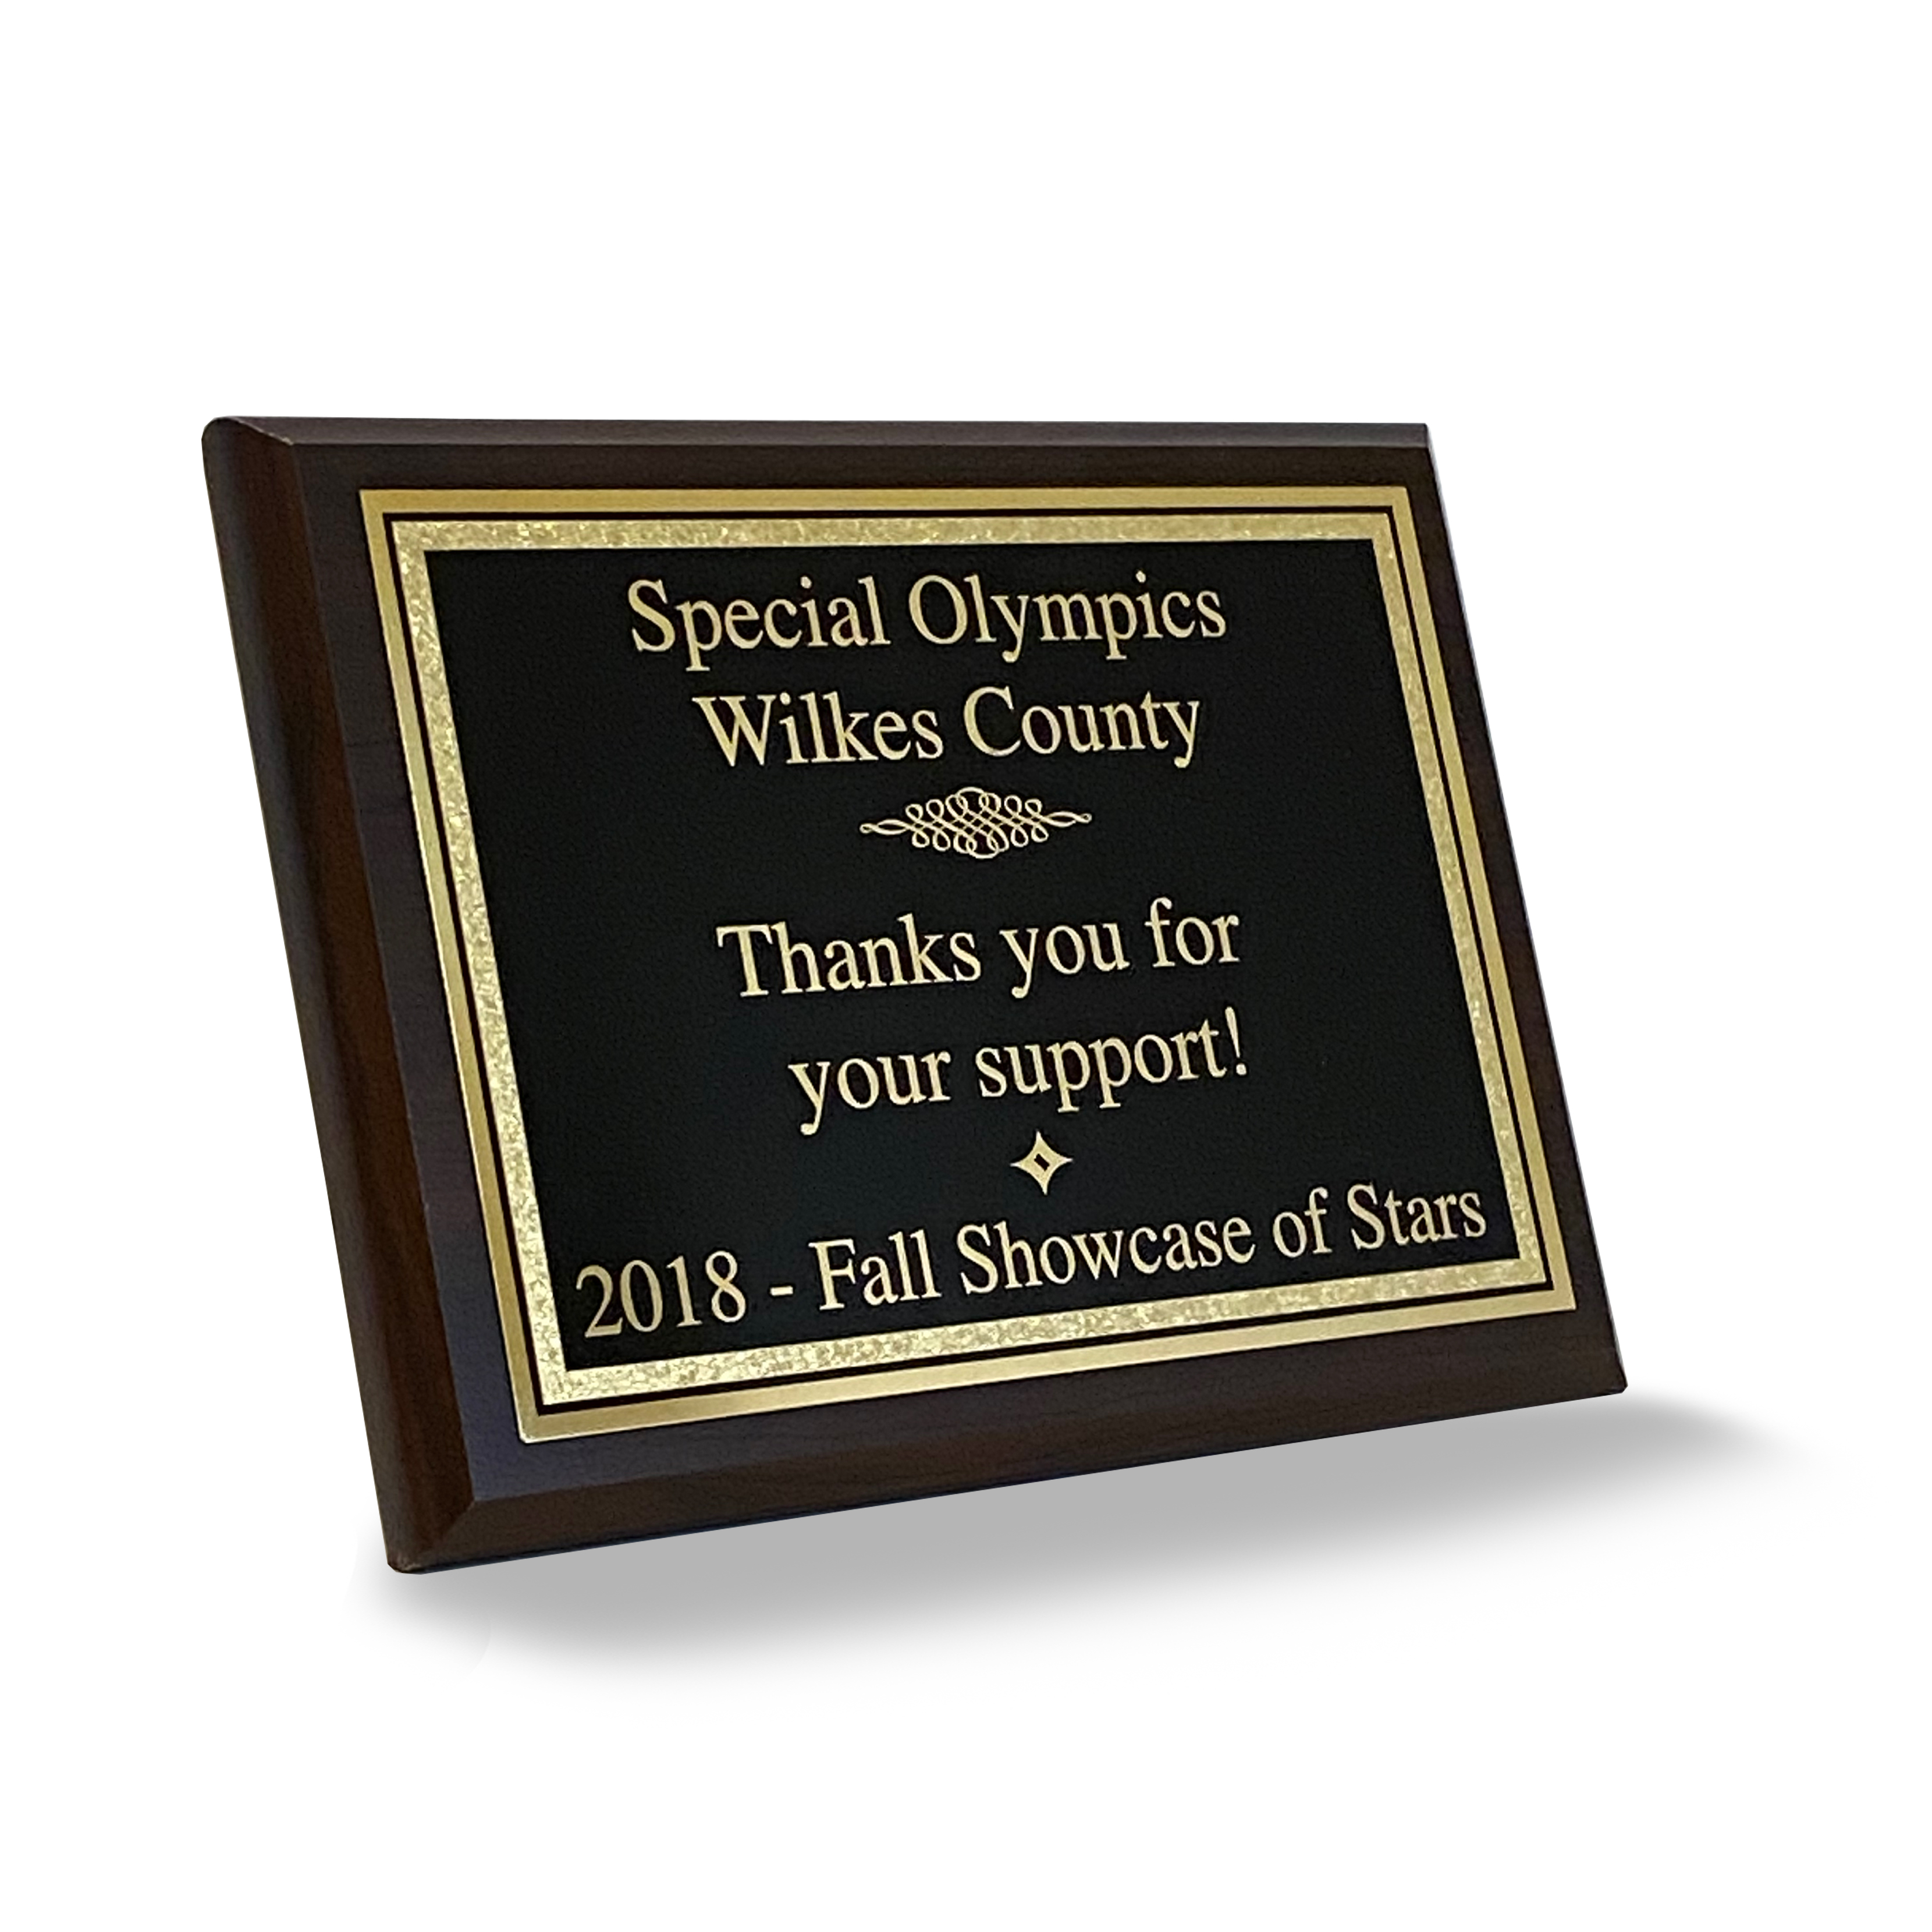 2018 Wilkes County Special Olympics